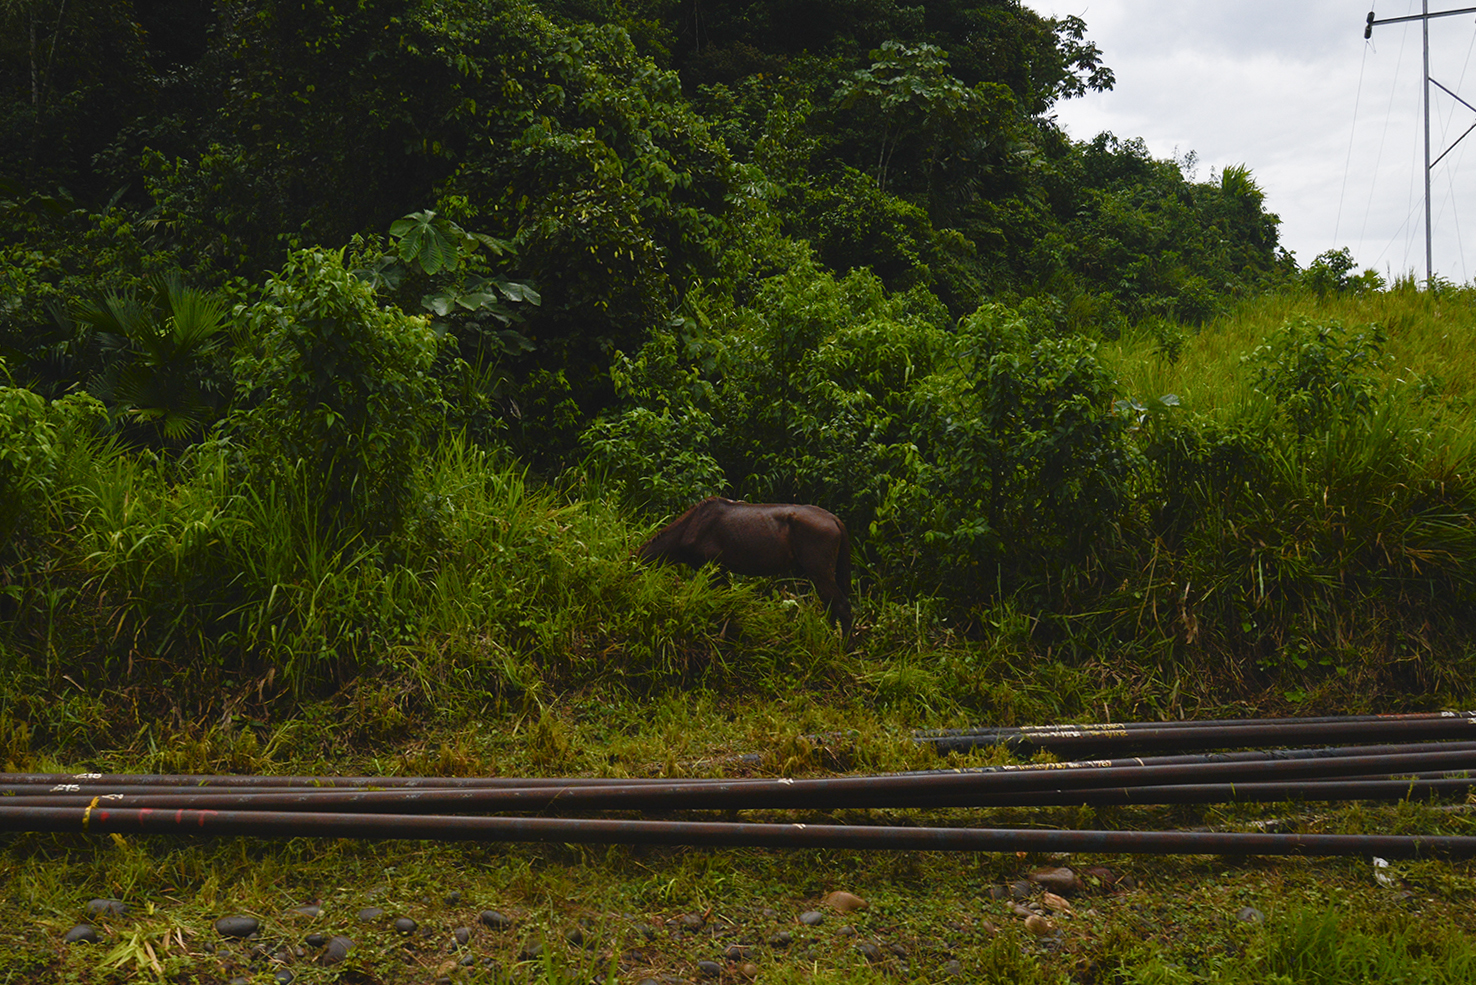 ECUADOR, Orellana Province. December 2015.  Horse grazing along oil pipelines in the El Auca road. The 60 miles long road was built in the 1970s by Texaco to move its drilling equipment to the deepest part of the Ecuadorian rainforest.